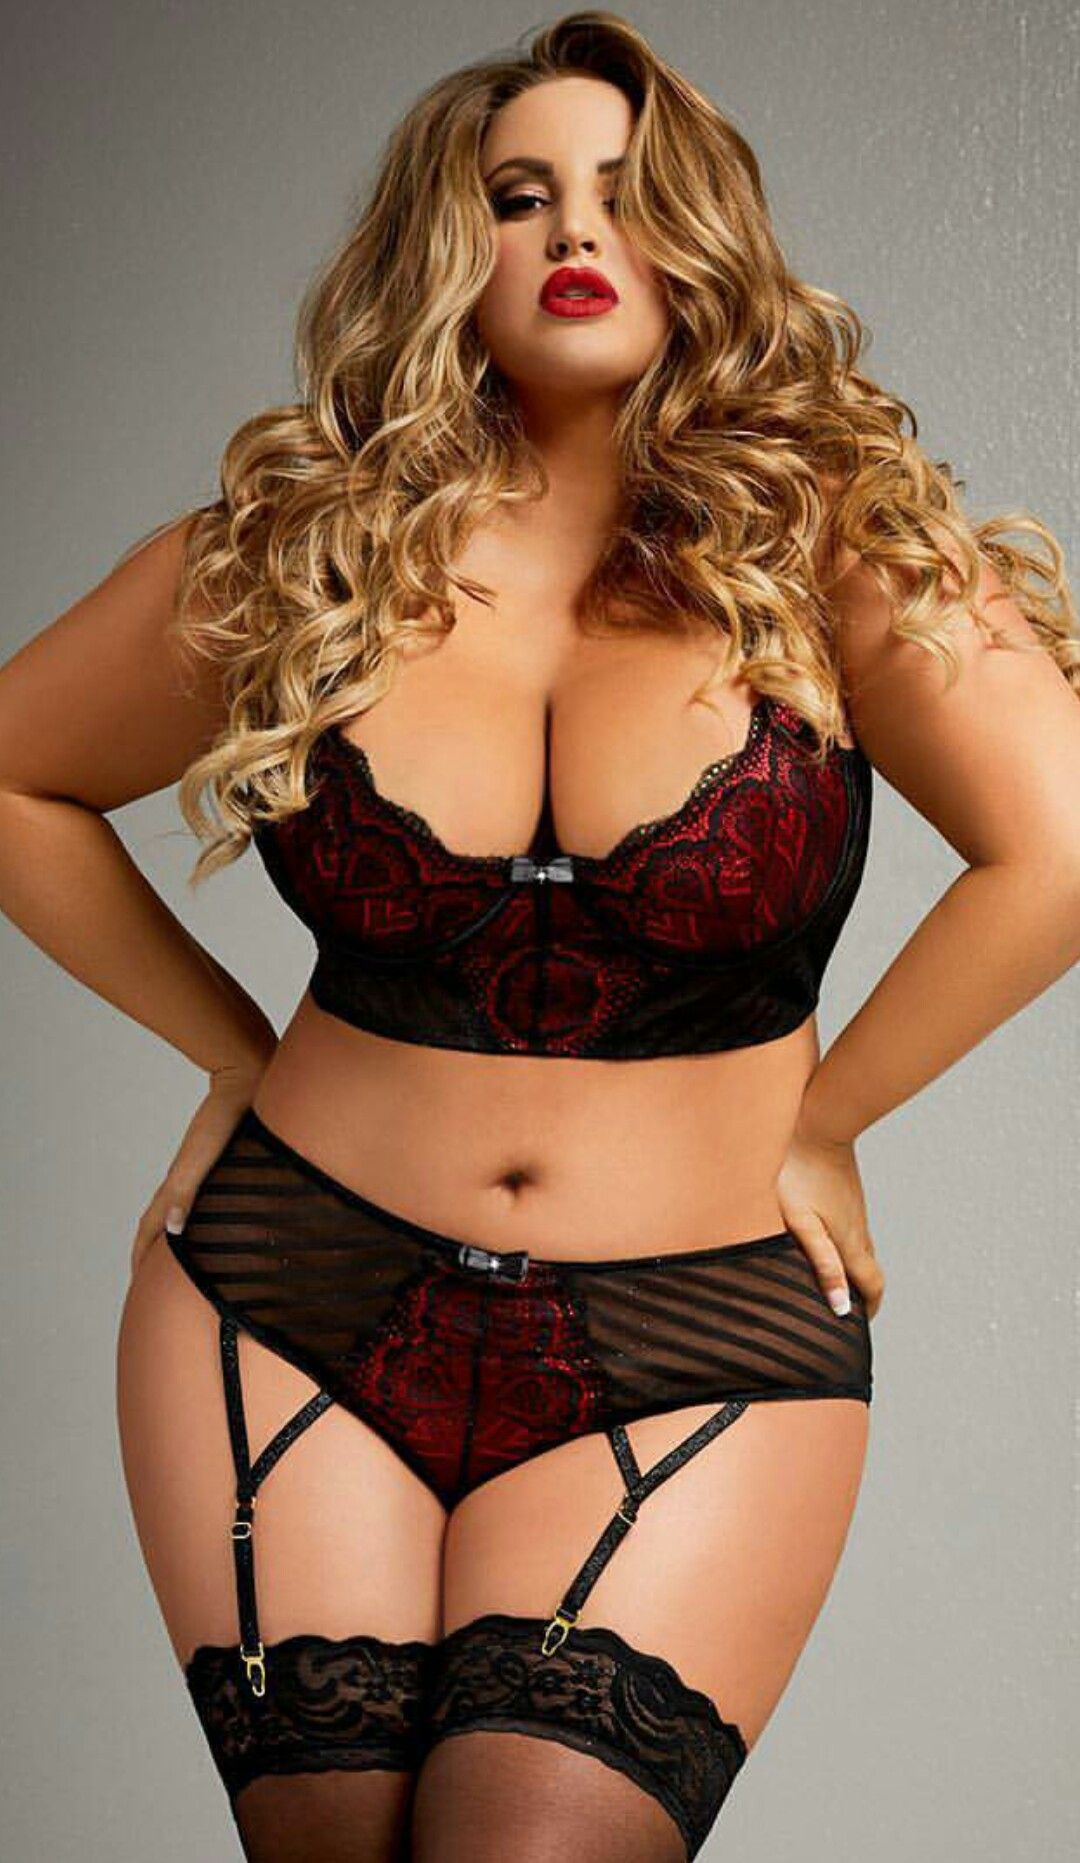 Ashley alexiss on pinterest curves lingerie and curvy